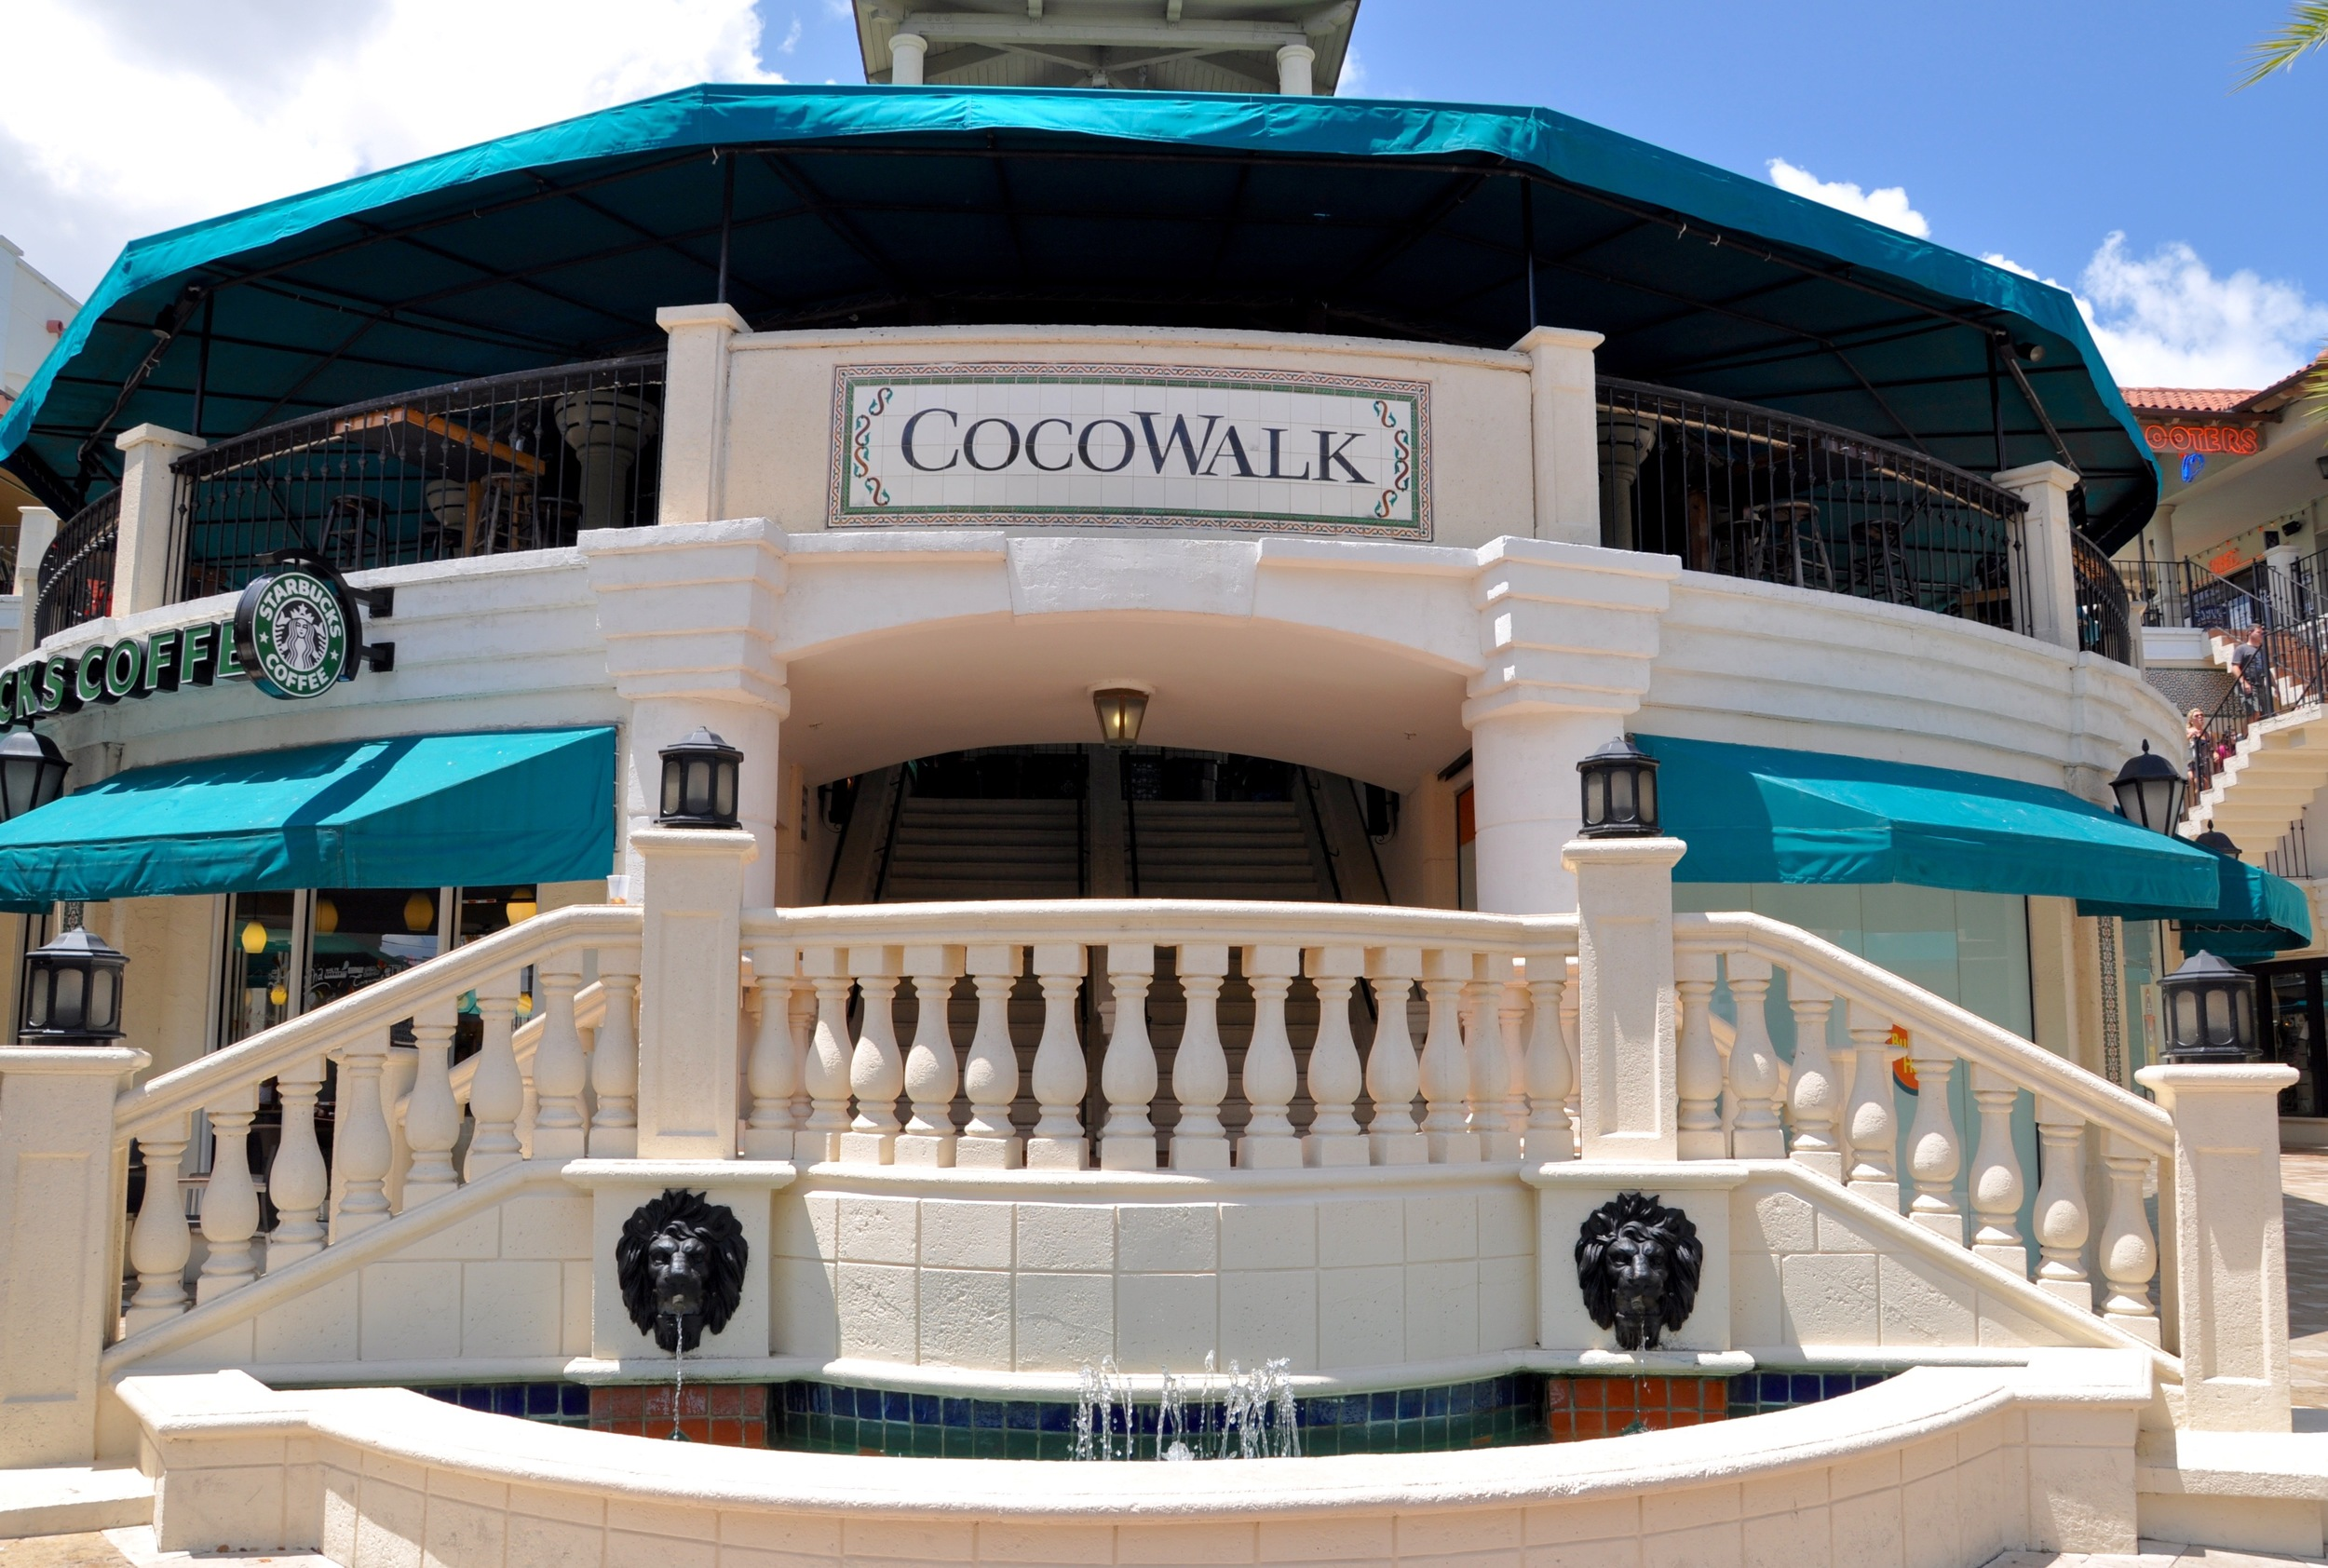 Cocowalk in 2011